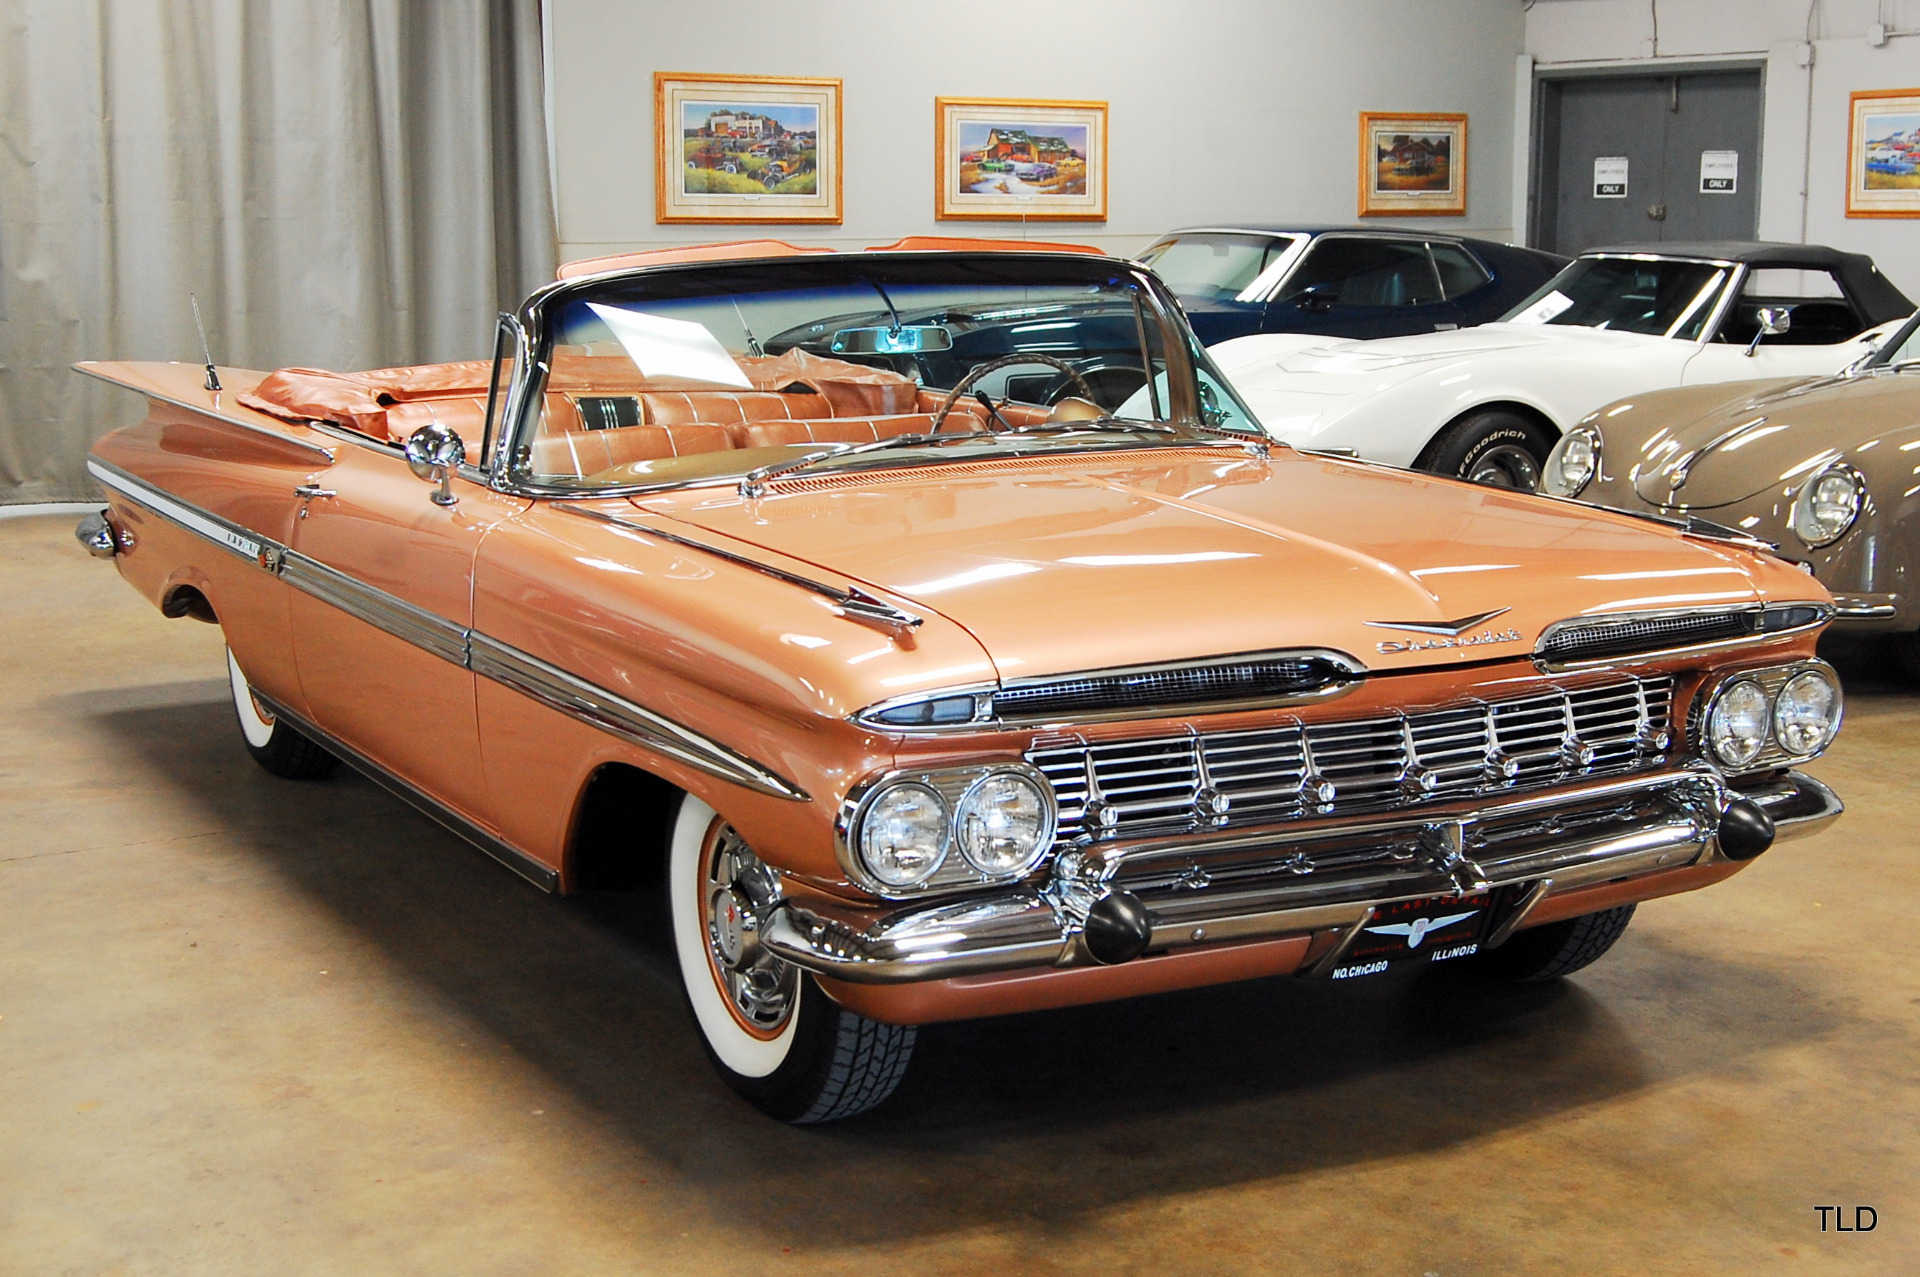 Chevy Coupe For Sale >> 1959 Chevrolet Impala